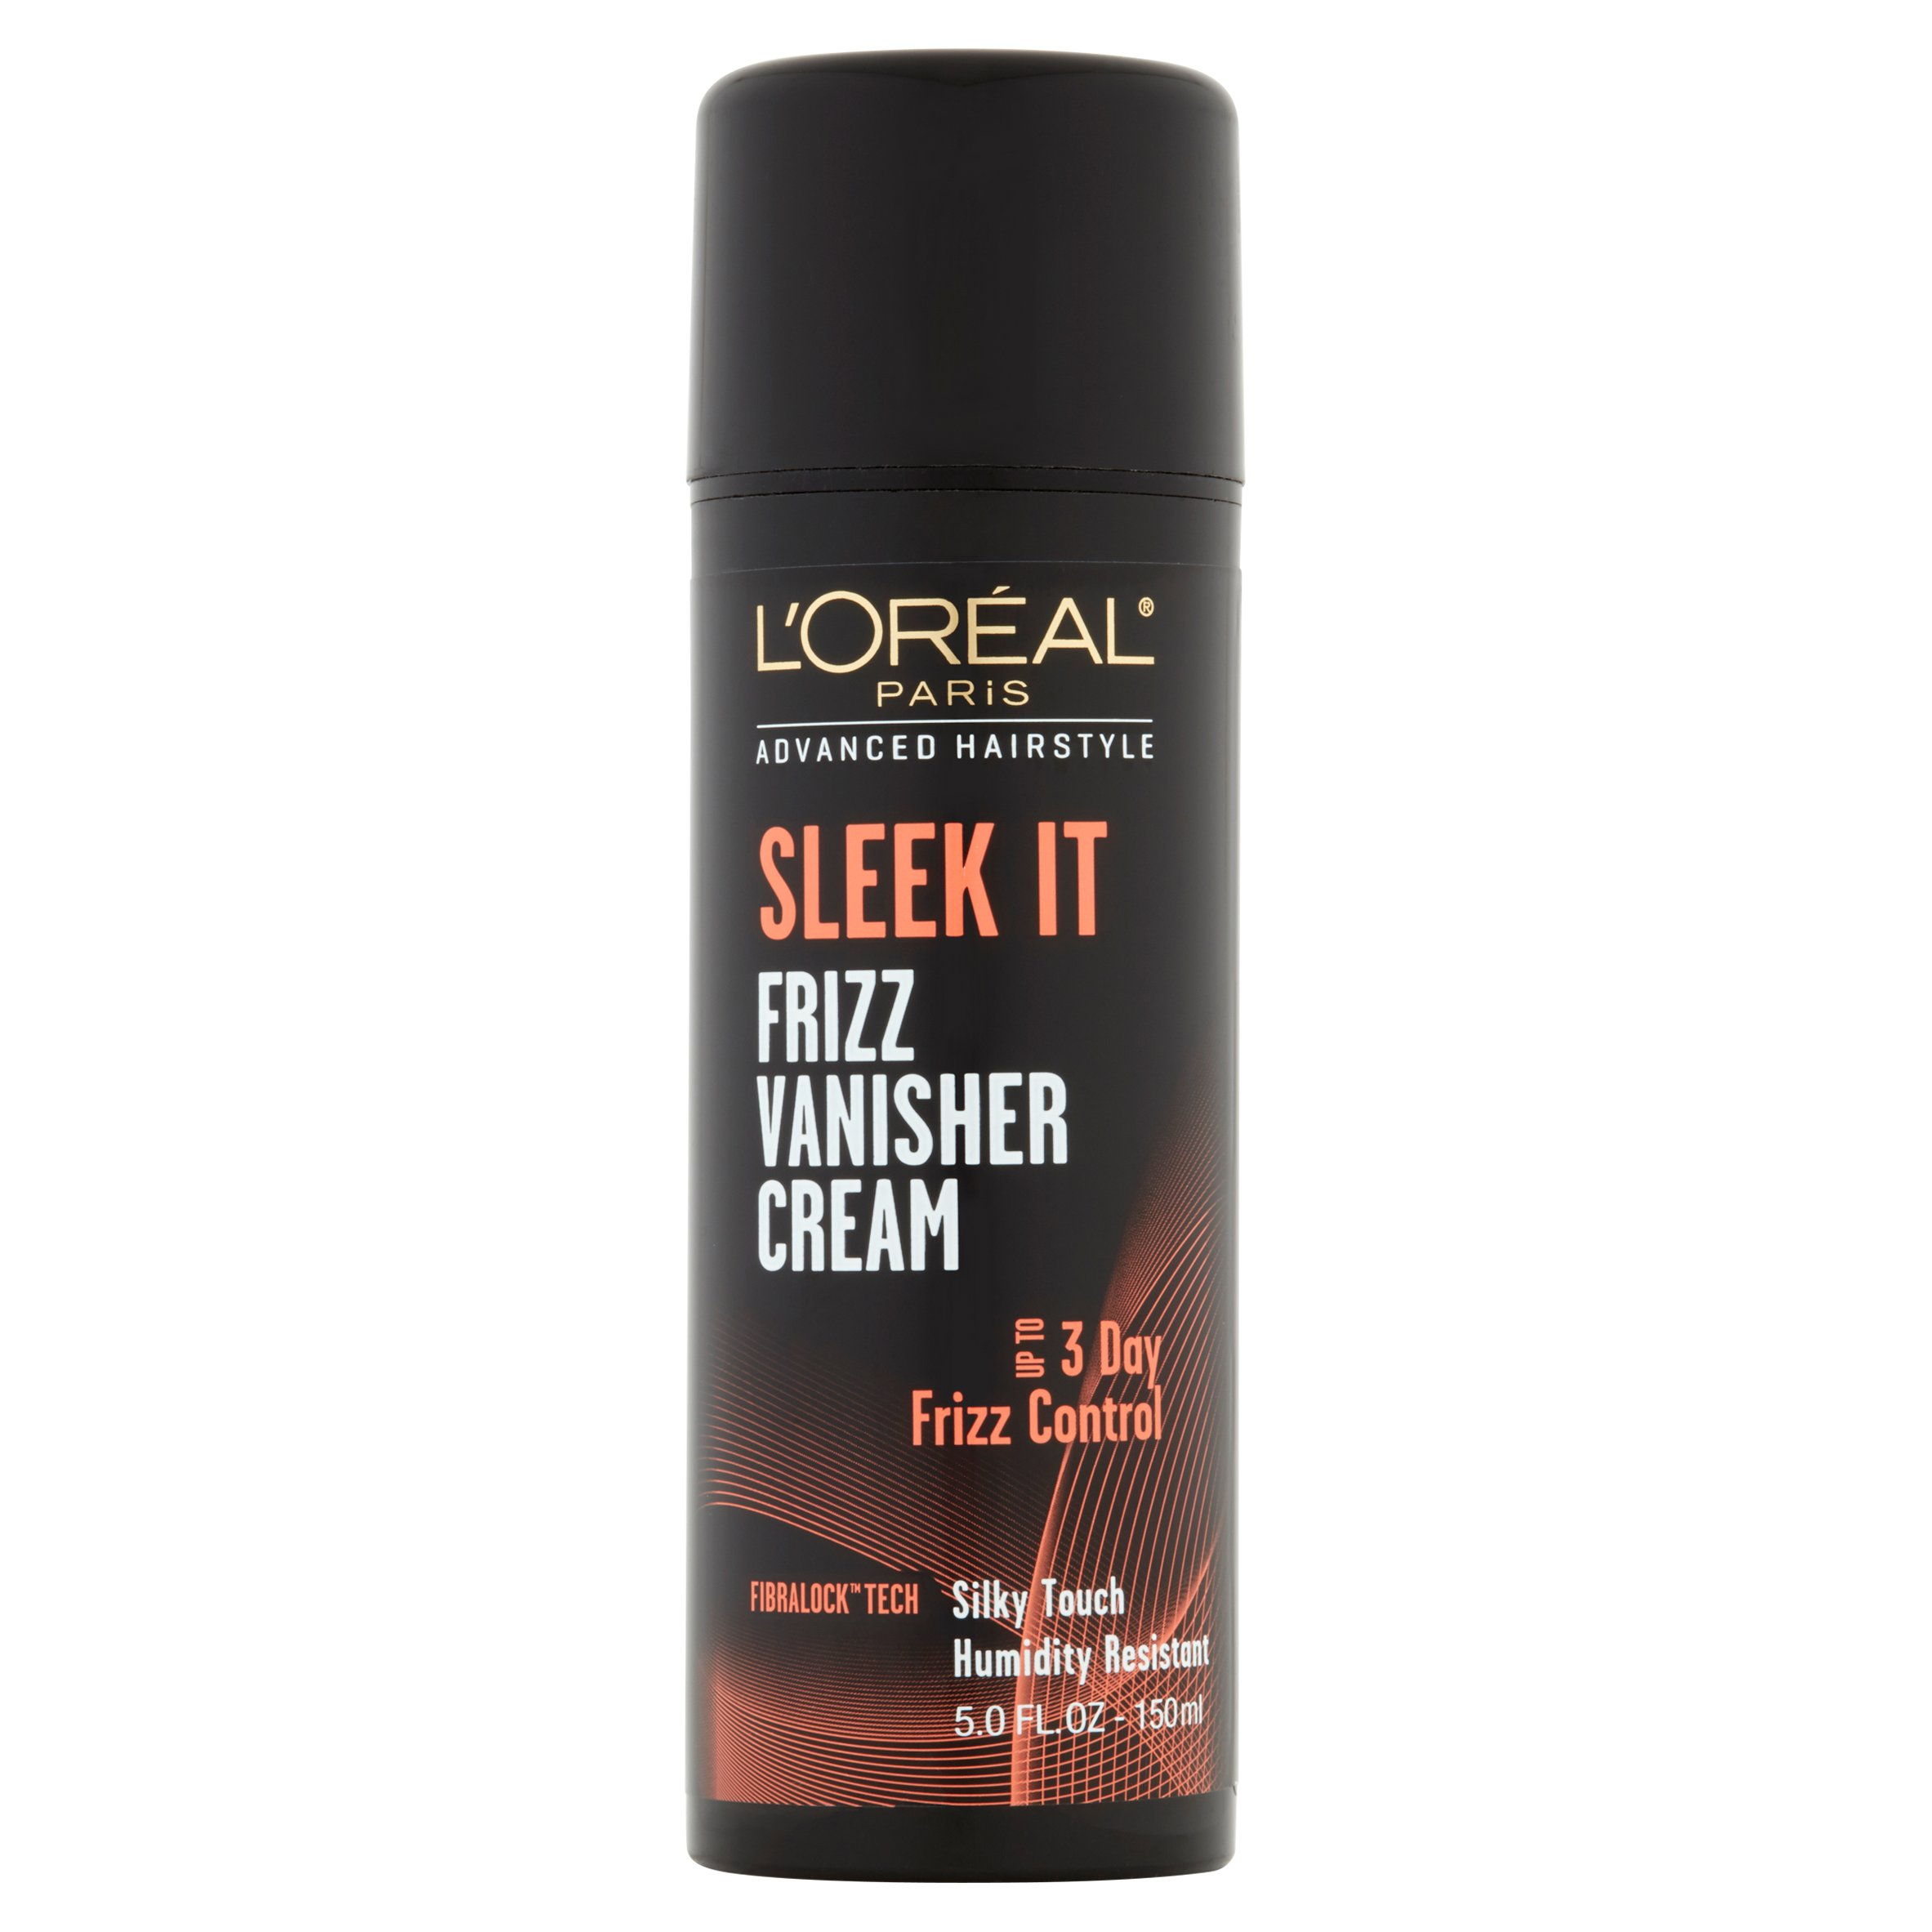 L'Oréal Paris Advanced Hairstyle SLEEK IT Frizz Vanisher Cream, 5 Fl Oz